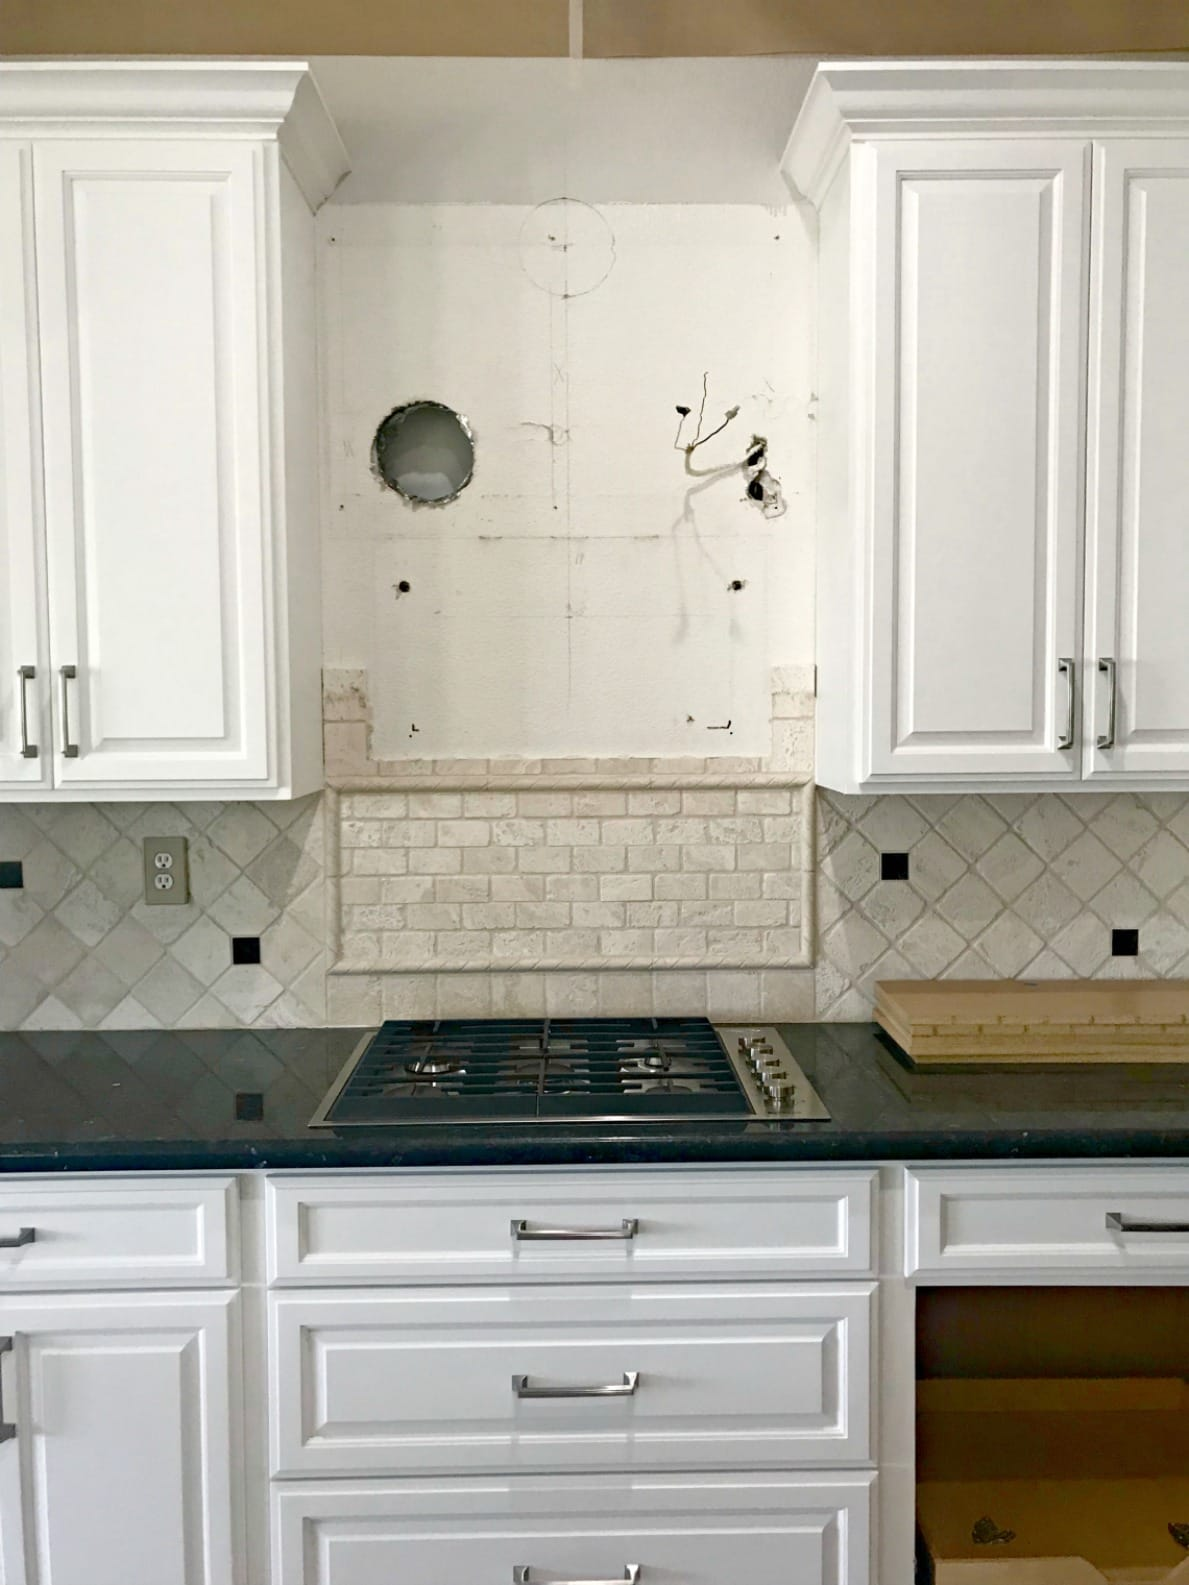 white kitchen cabinets before hood is installed on A Well Styled Life